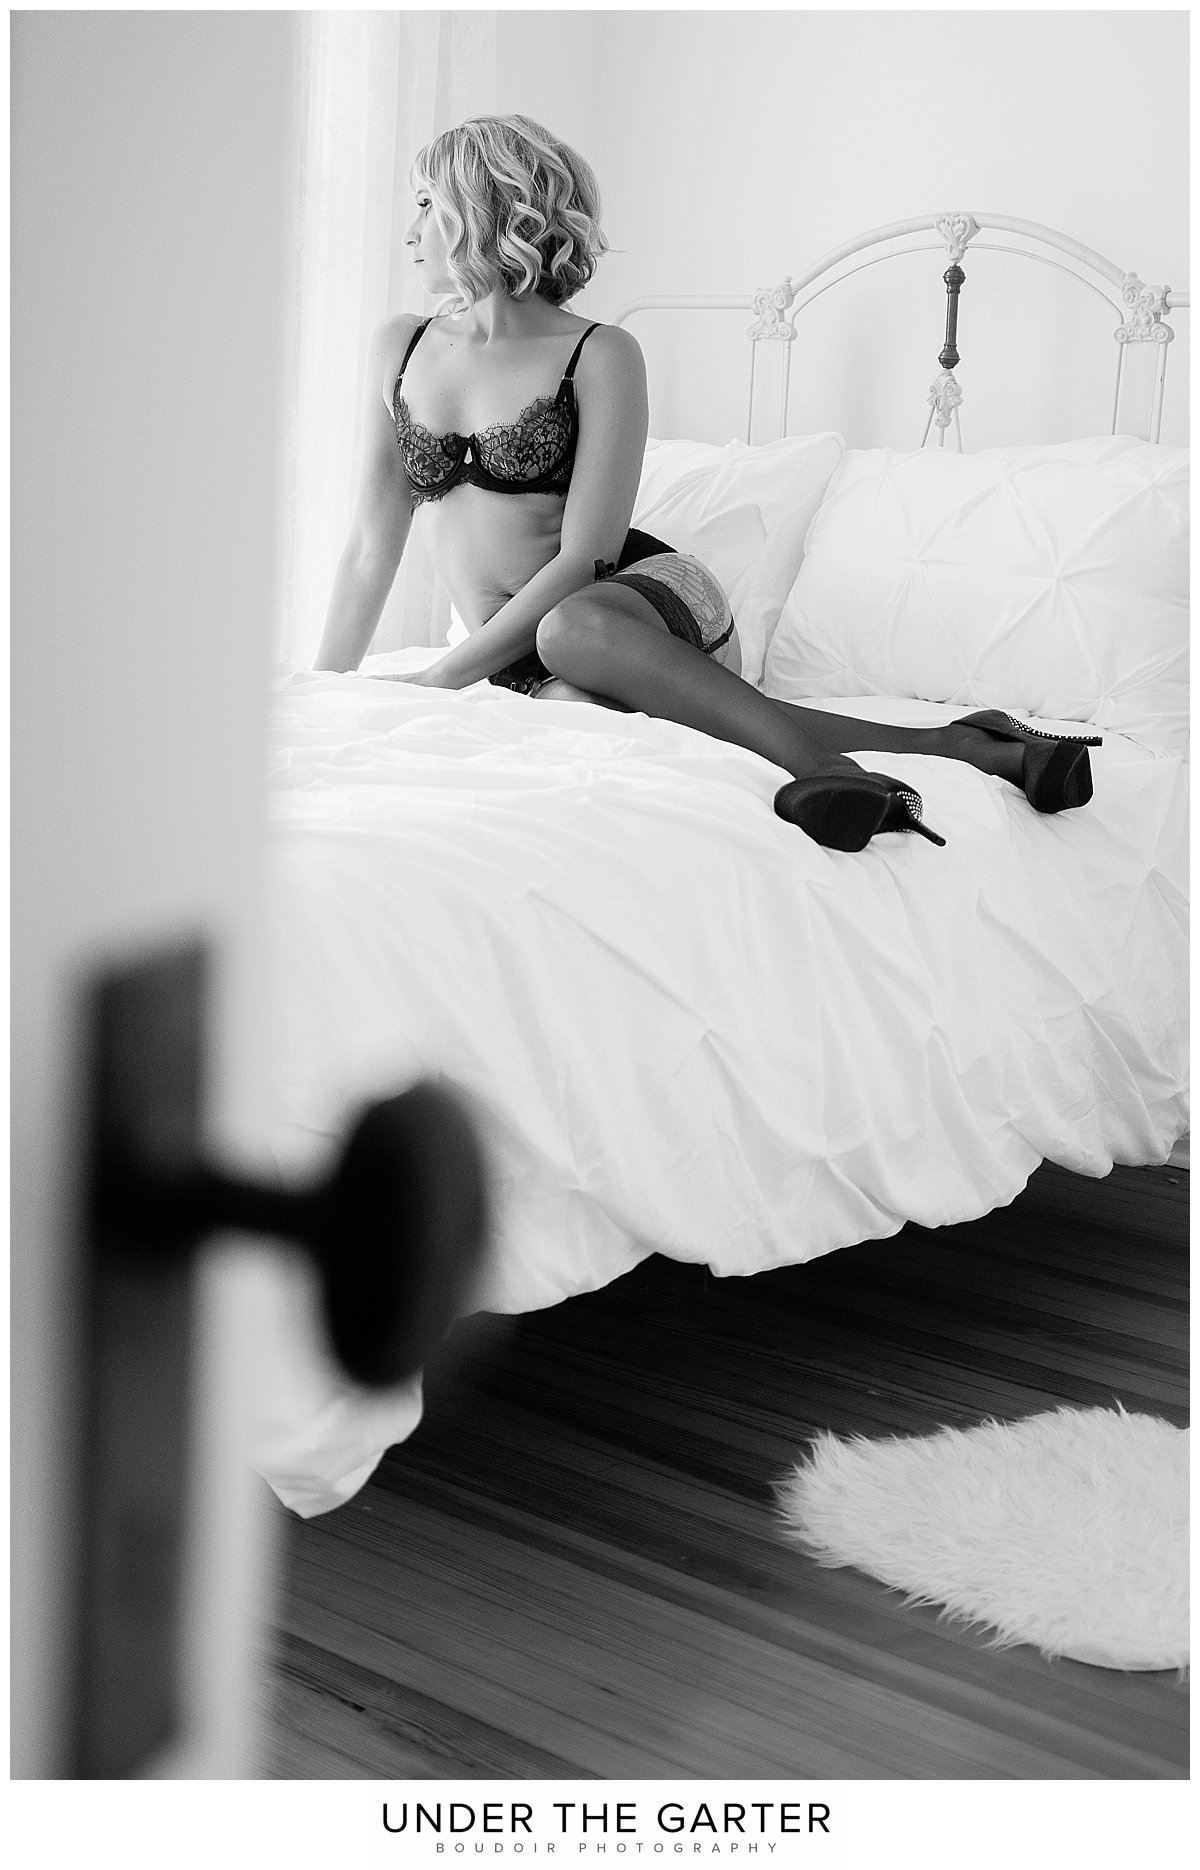 boudoir photography denver looking out window.jpg